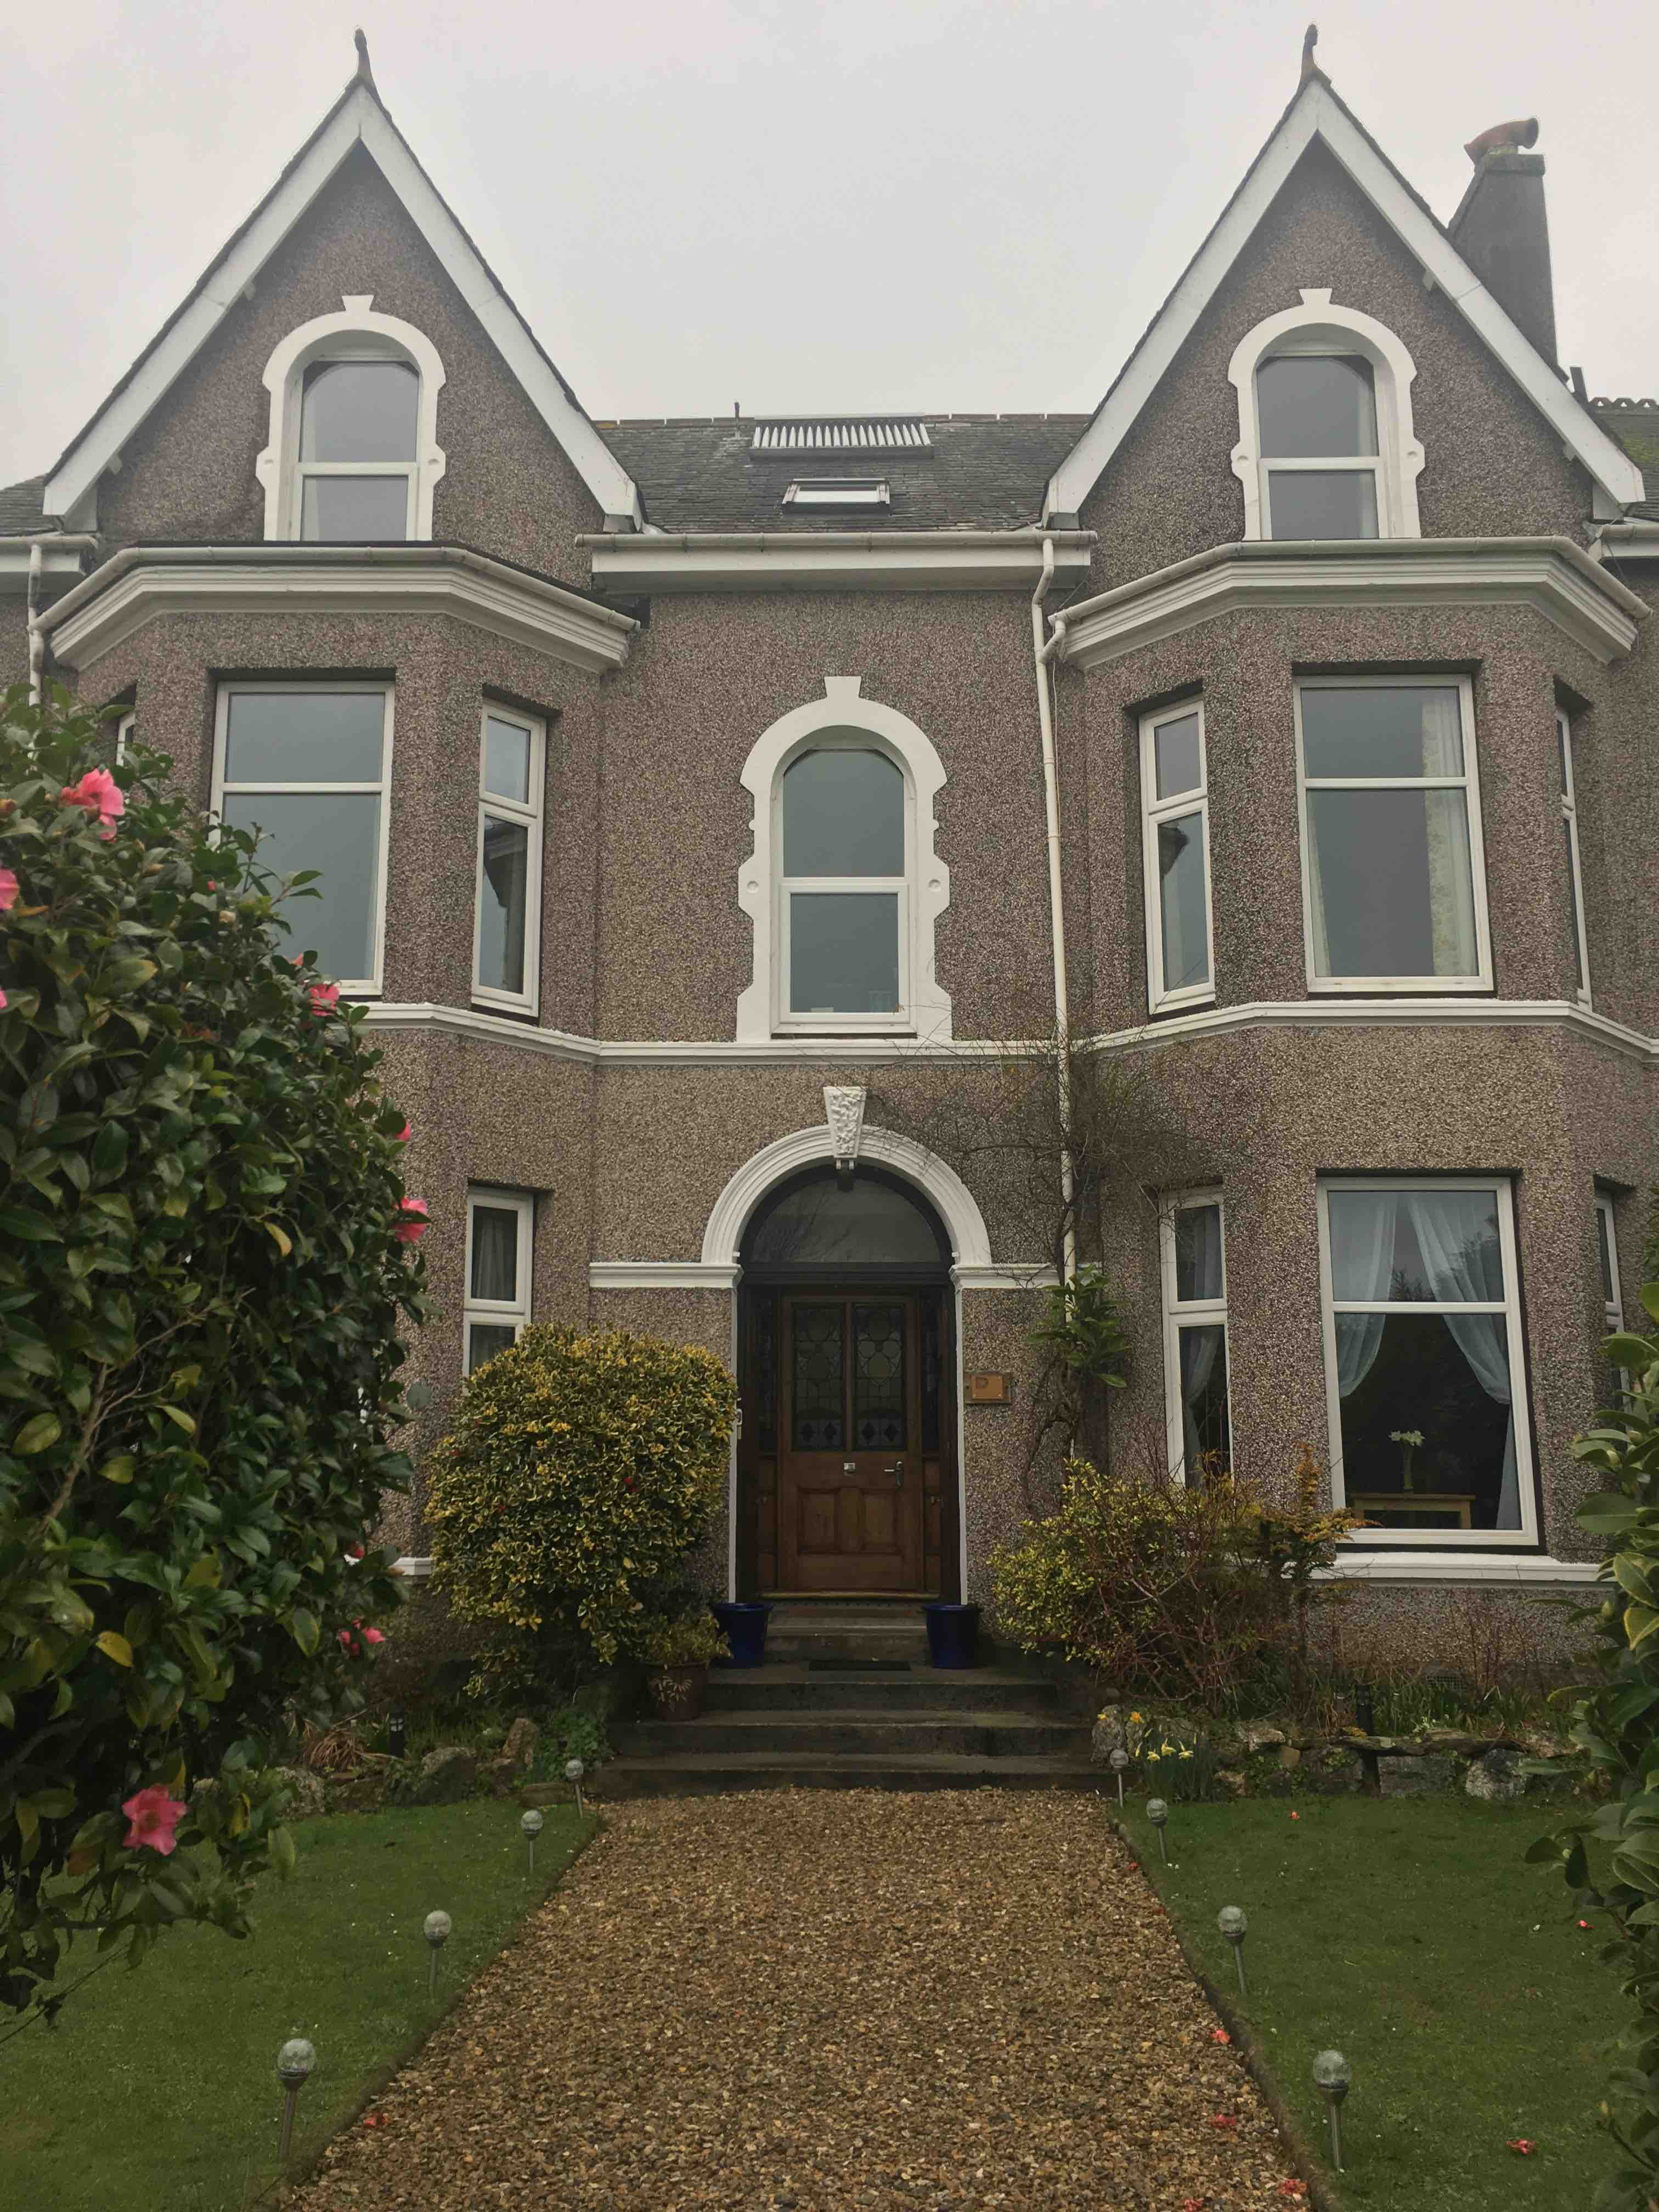 3 rooms in Yelverton, Yelverton, PL20 6DR RoomsLocal image